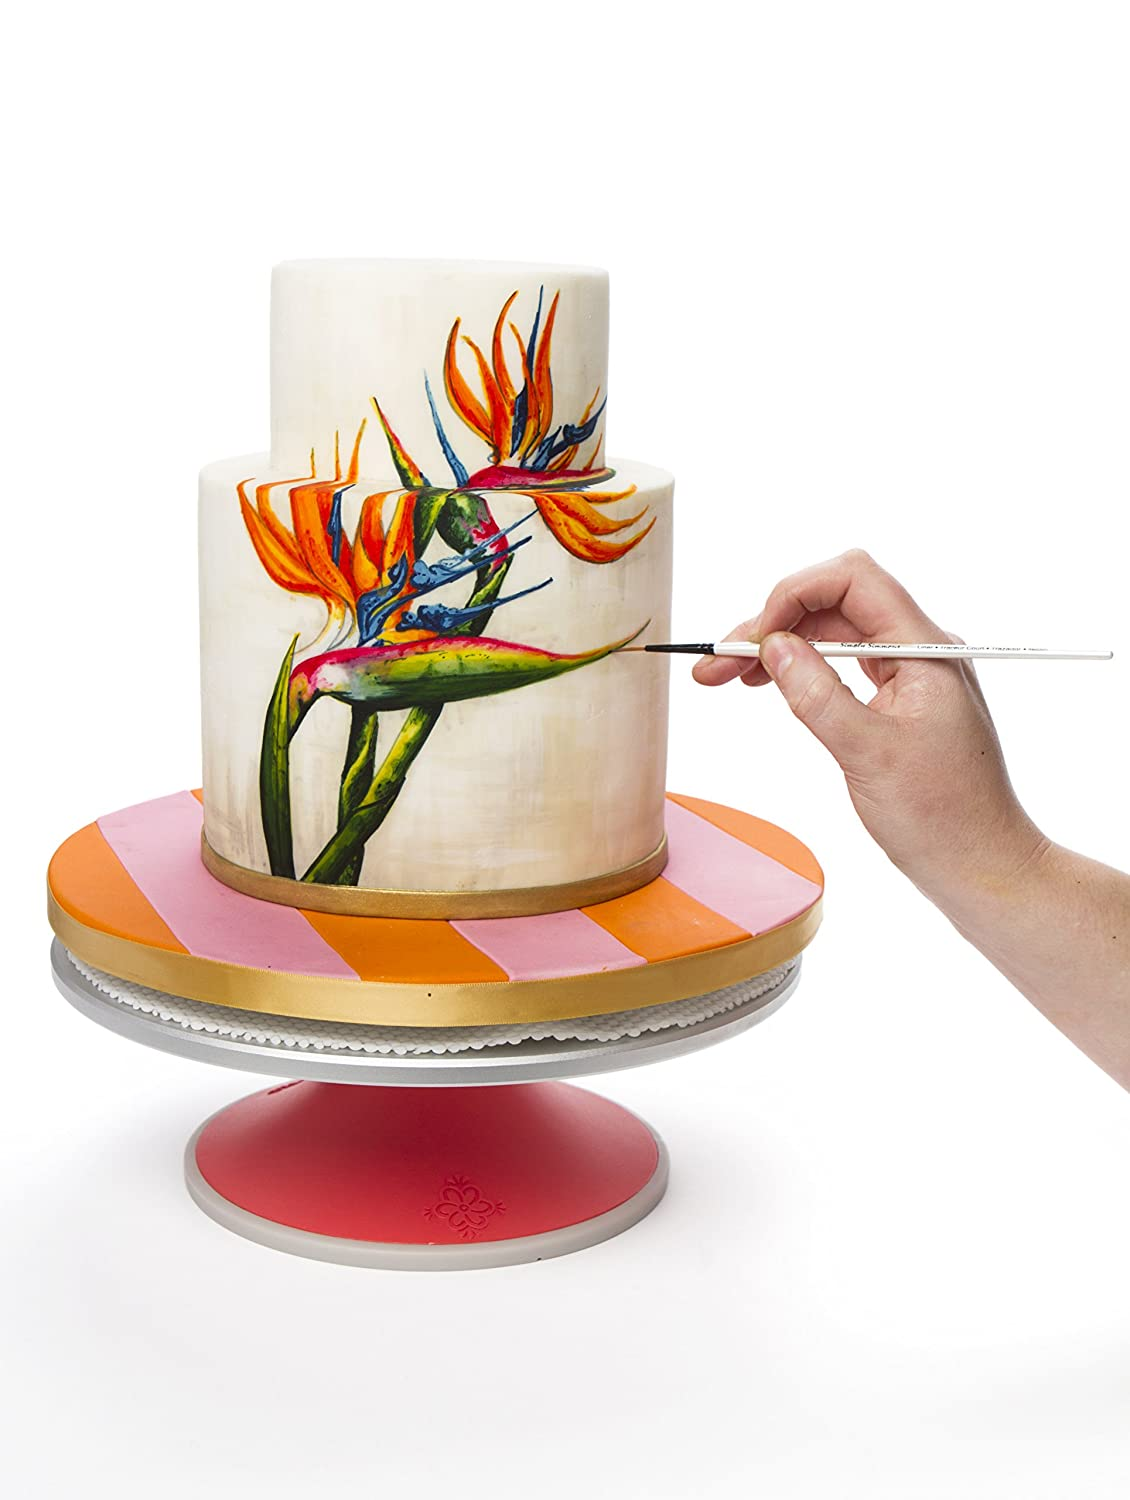 Innovative Sugarworks Artists Cake Turntable Rotating Cake Stand Cake Decorating Stand with Brake//Stop ISWTT00001